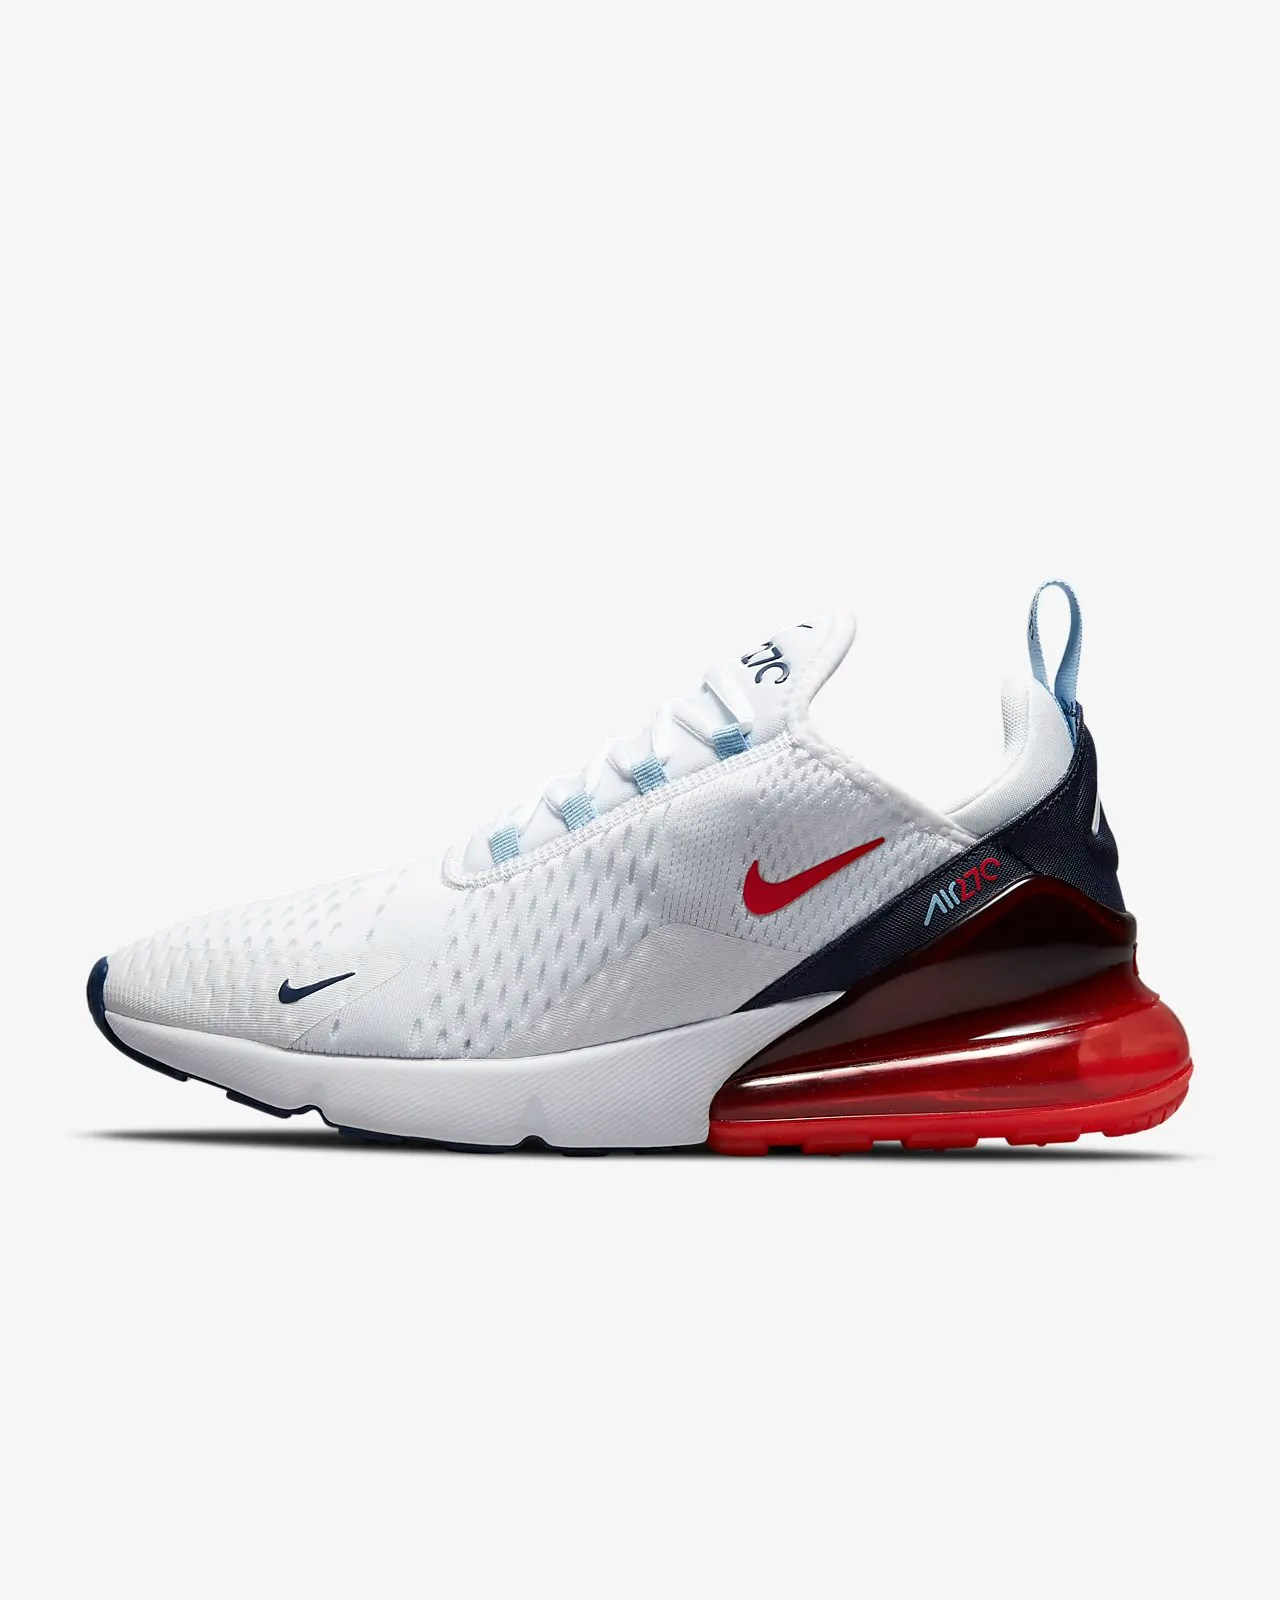 Nike Air Max 270 'White /Chile Red'